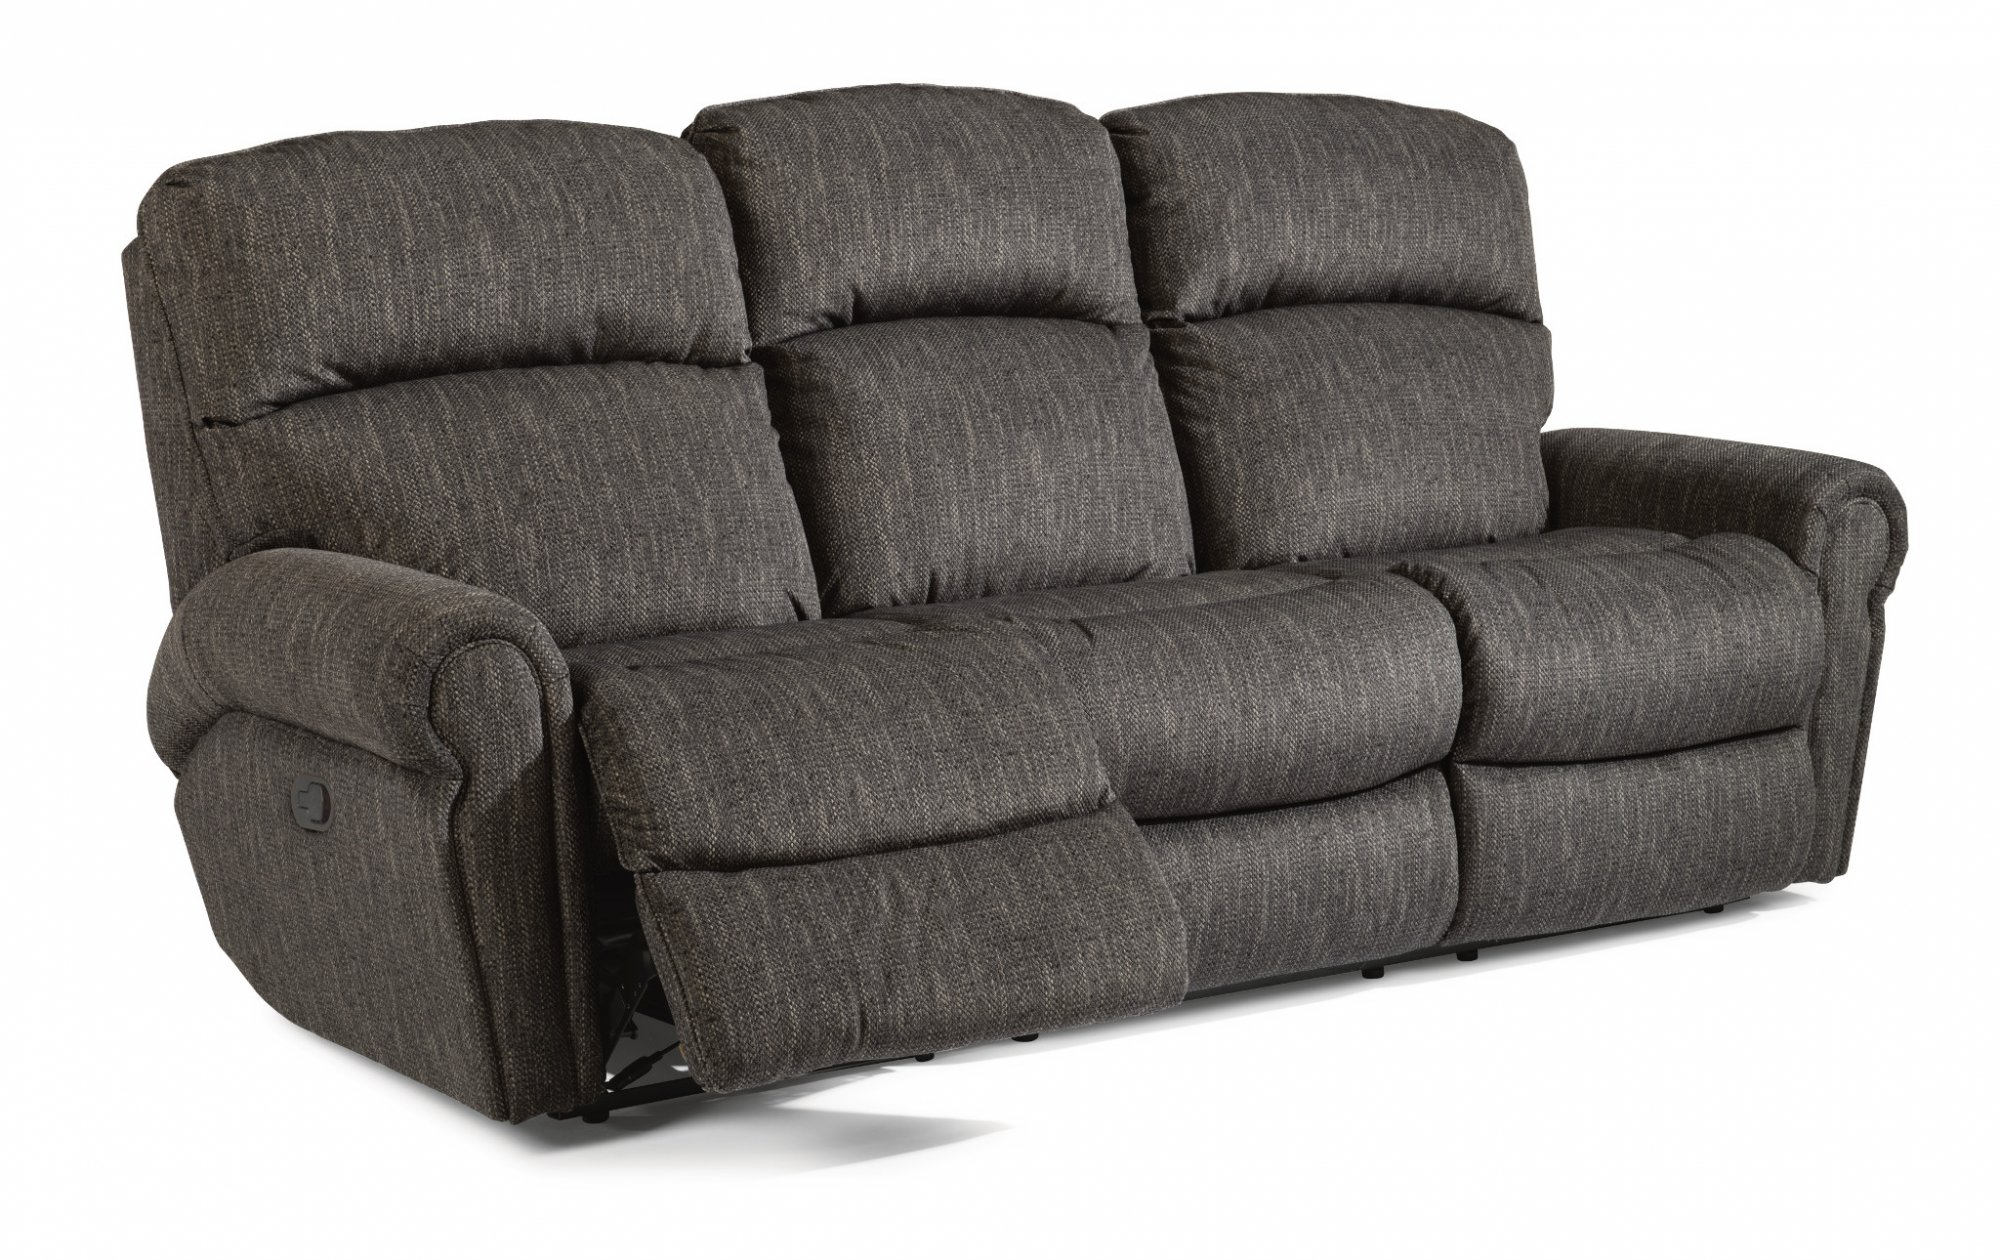 Reclining chairs sofas reclining furniture from flexsteel fabric reclining sofa parisarafo Image collections